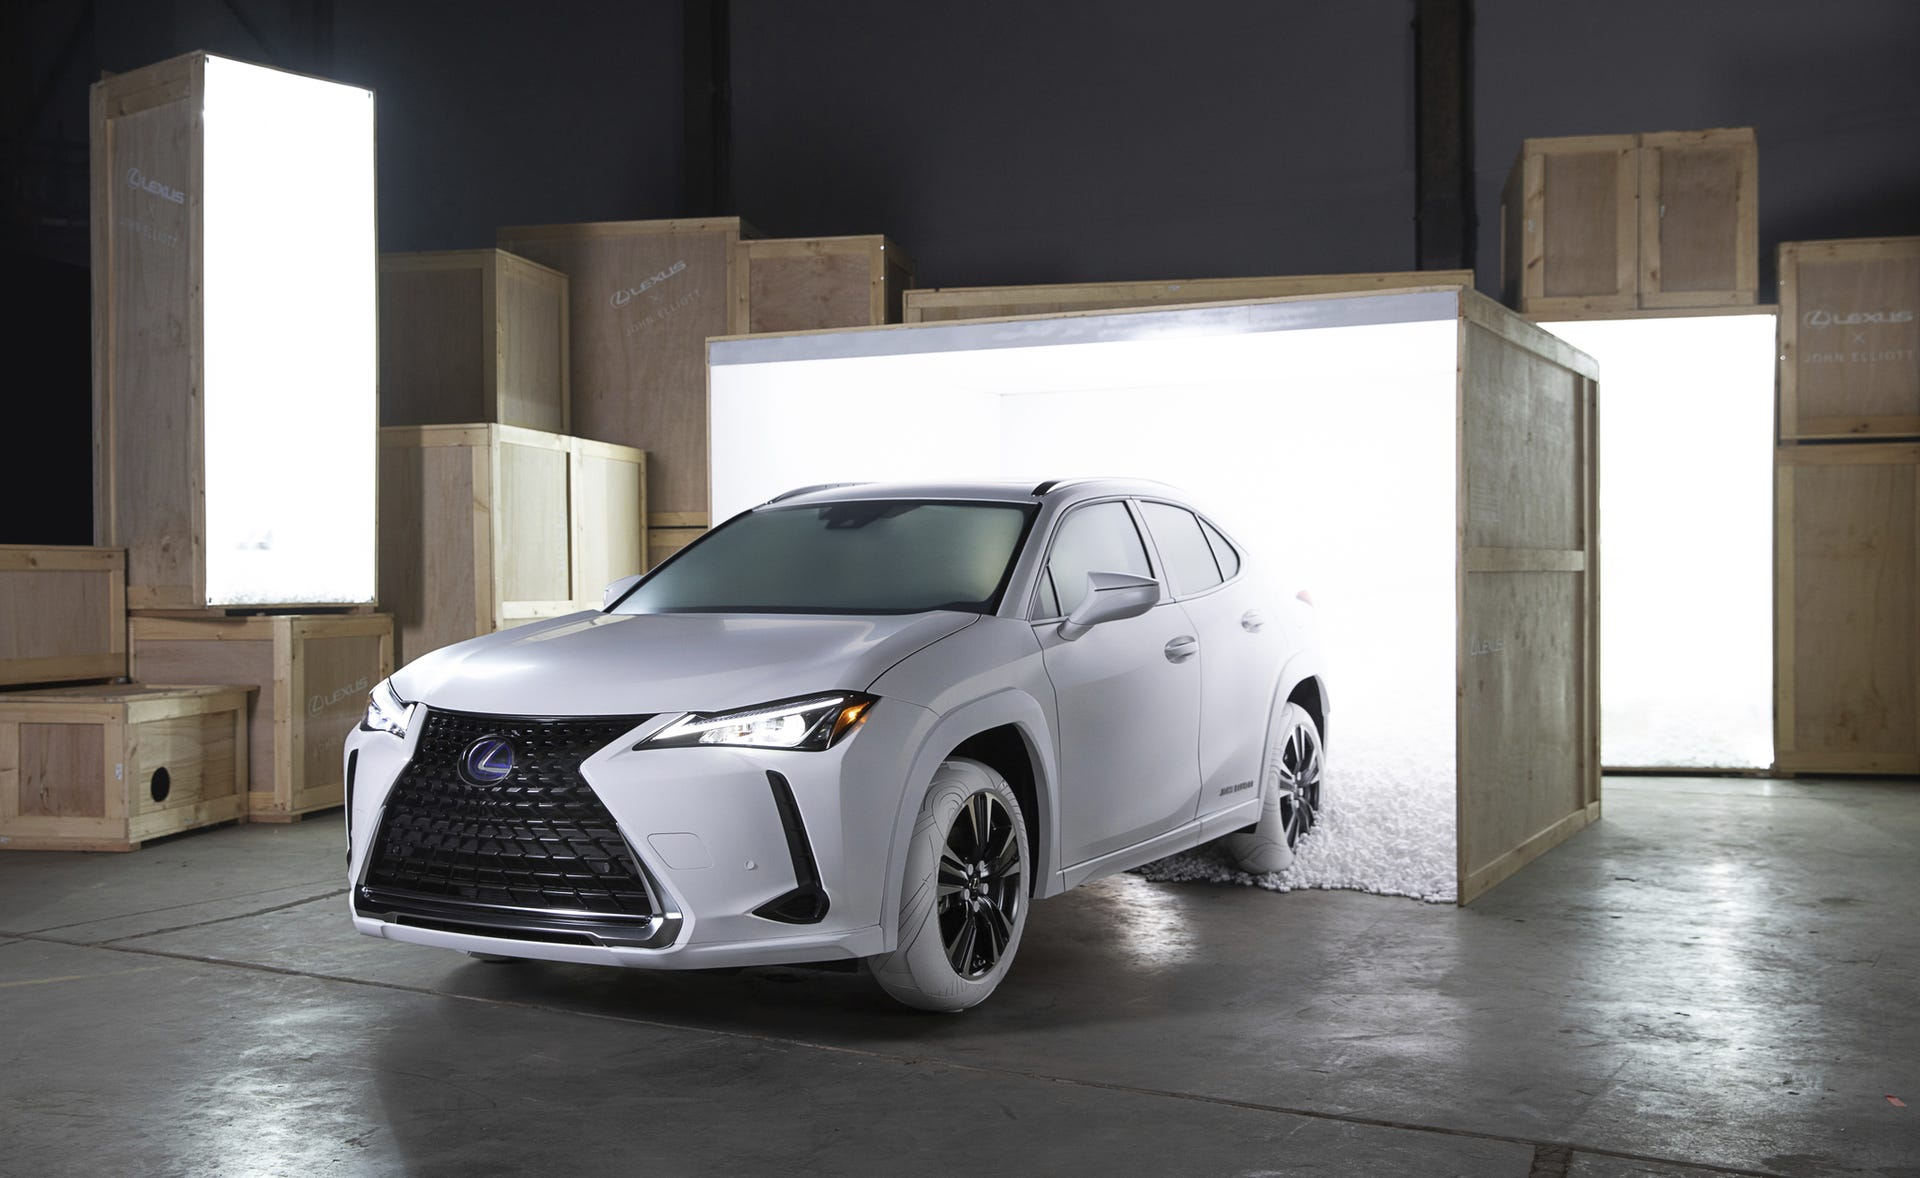 sale retailer 4e6ae 9e56f Lexus UX wears tires inspired by Nike Air Force 1 sneakers